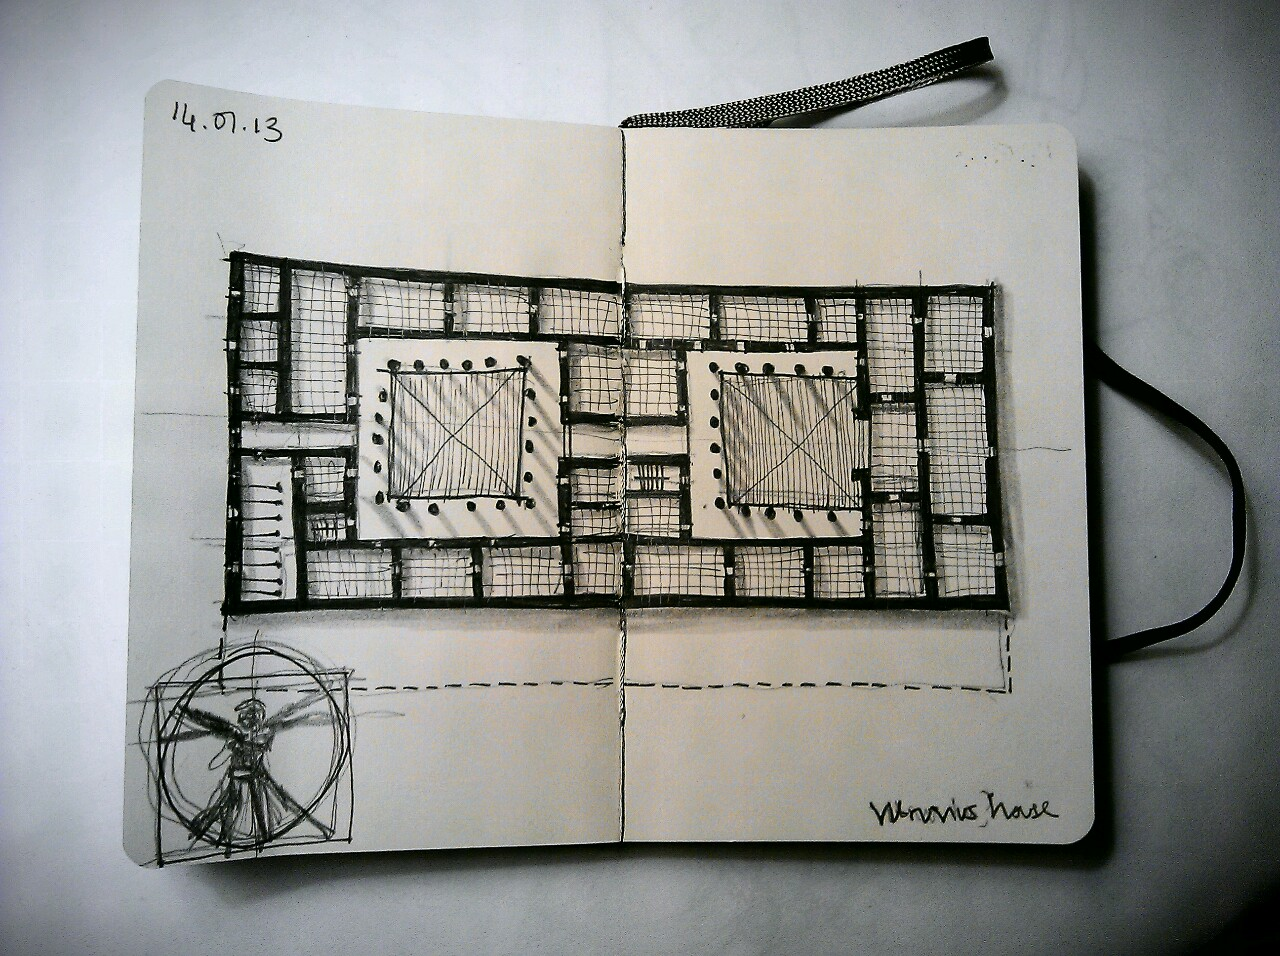 365 drawings later … day 349 … vitruvius house